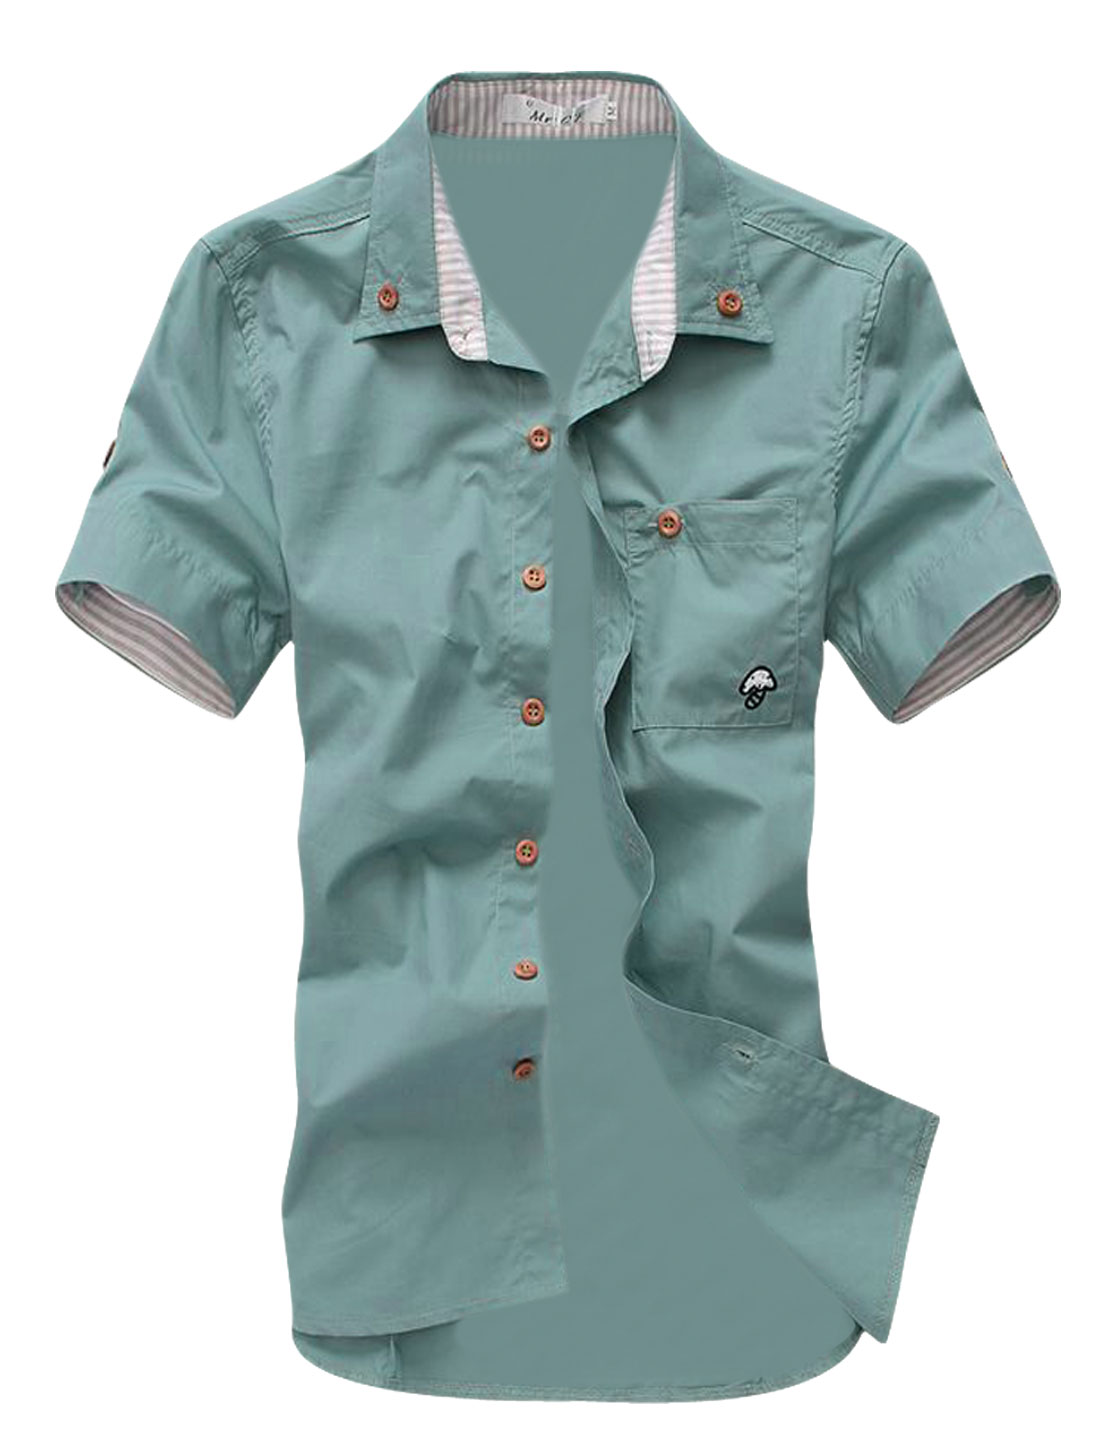 Mens NEW Fashion Mint Green Short Sleeve Casual Summer Shirt Tops XS